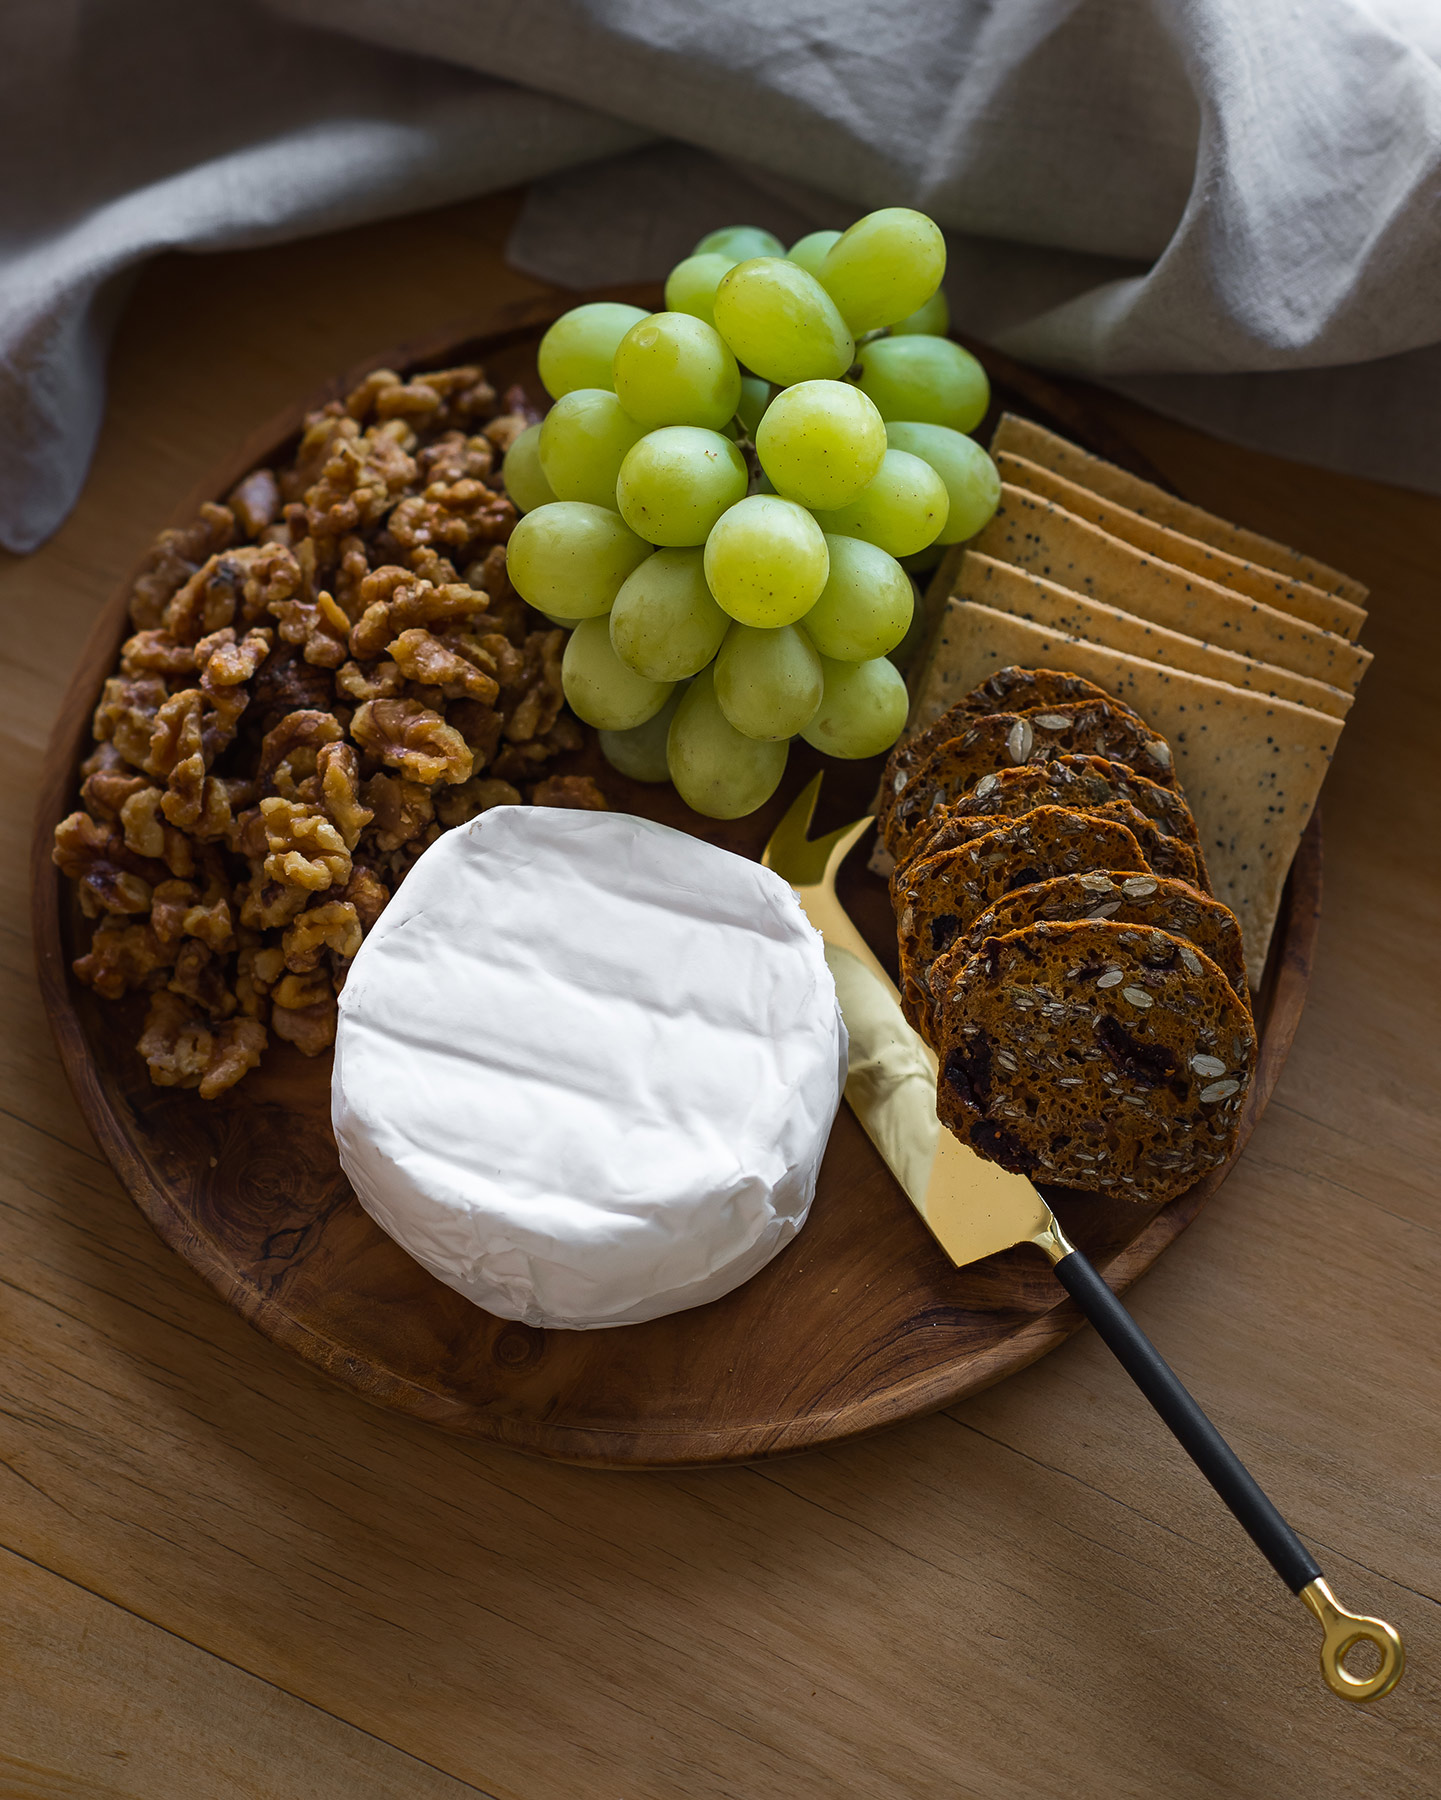 Sample cheese plate